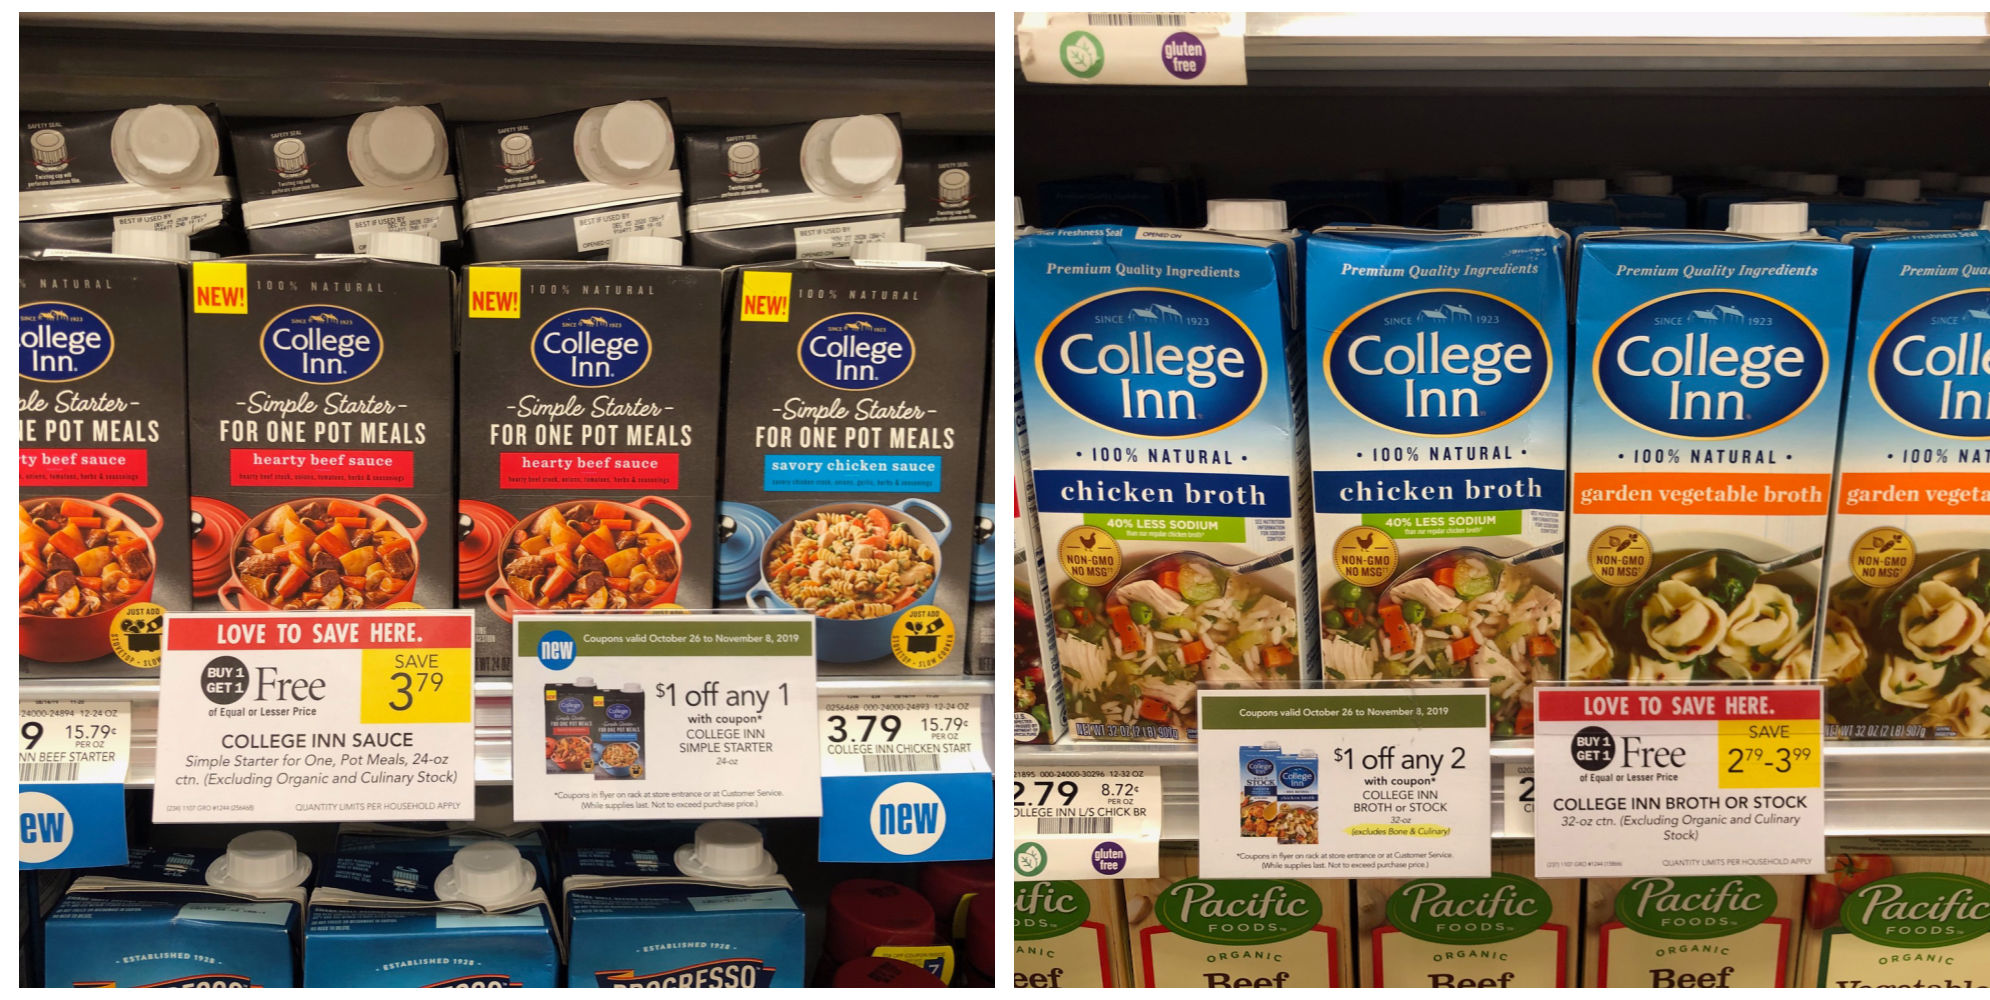 Super Deals College Inn Products At Publix - As Low As FREE After Coupons! on I Heart Publix